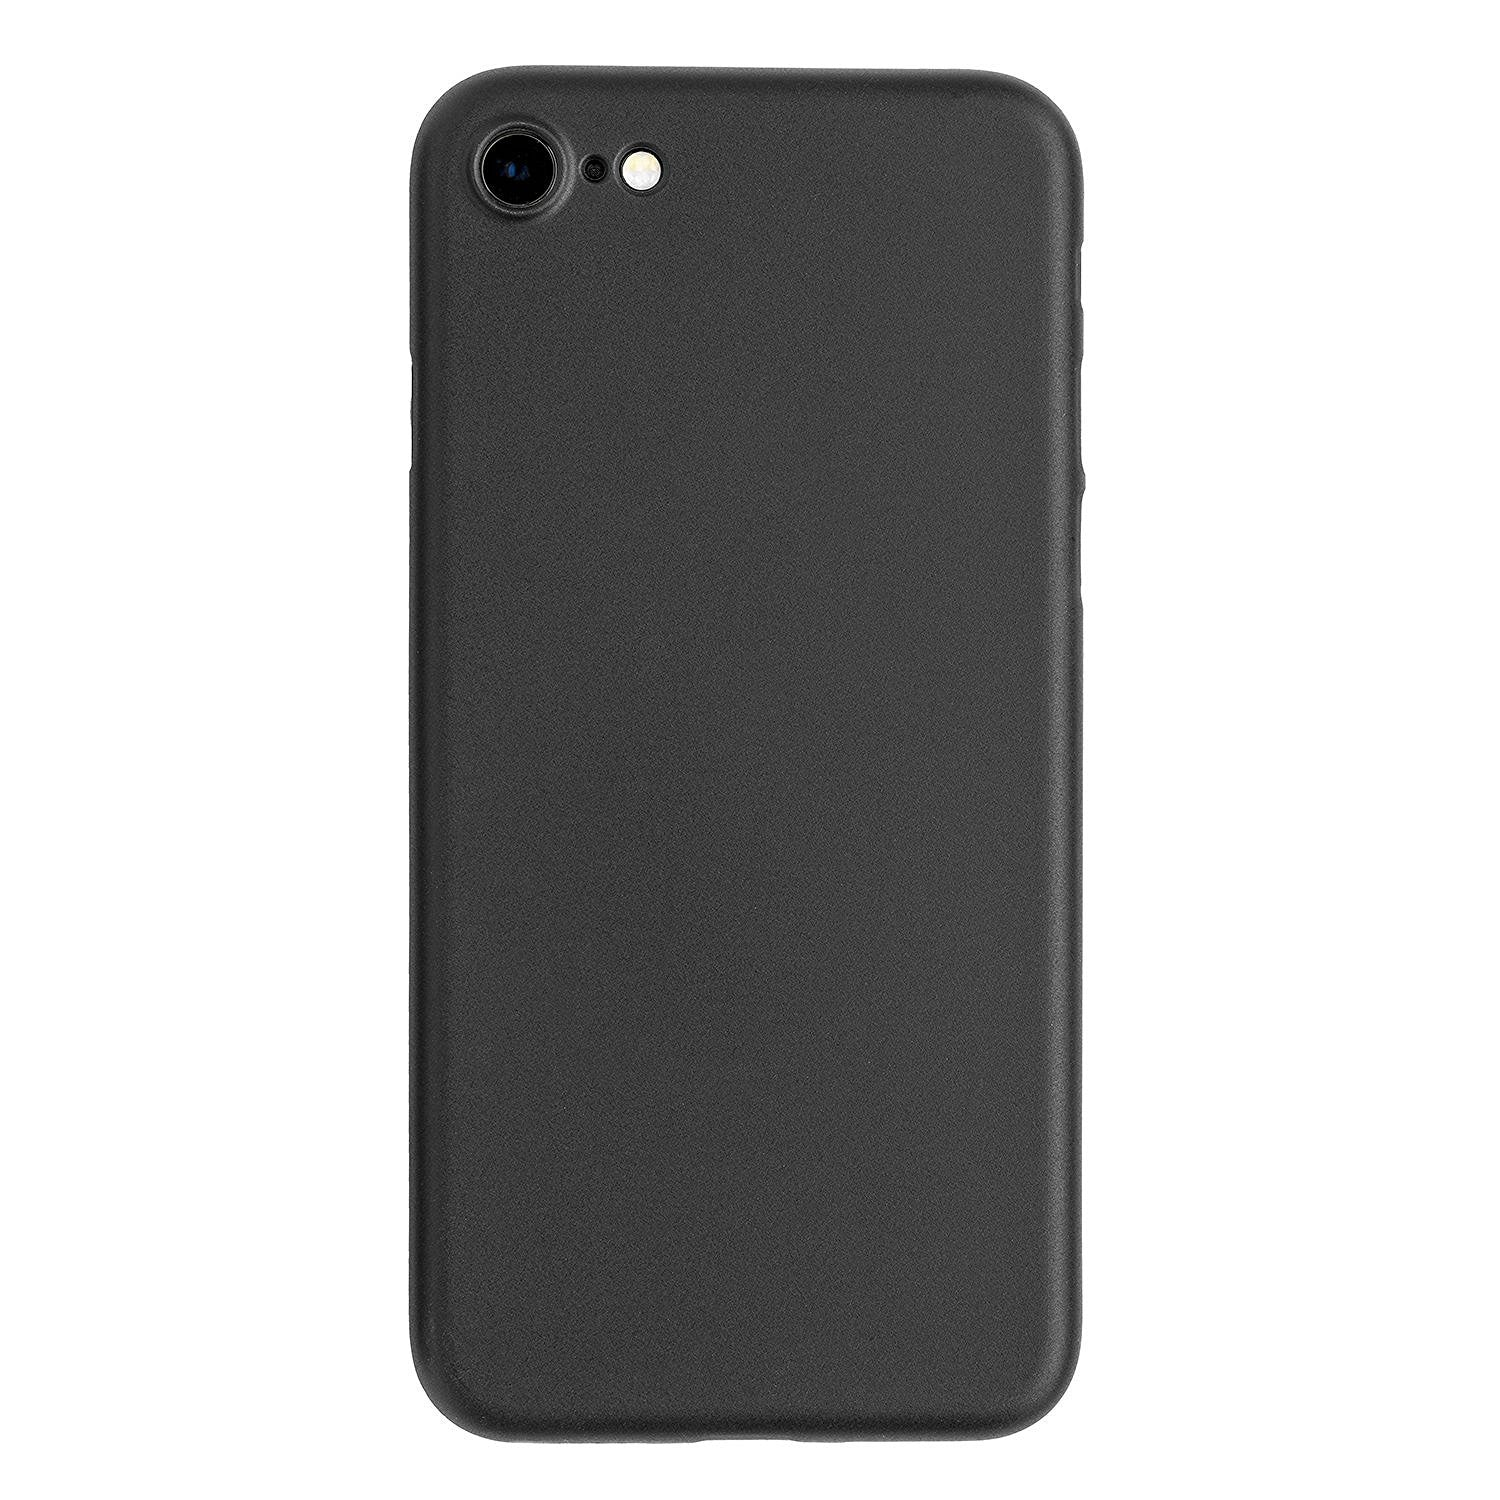 Abrigo iPhone 7 Case